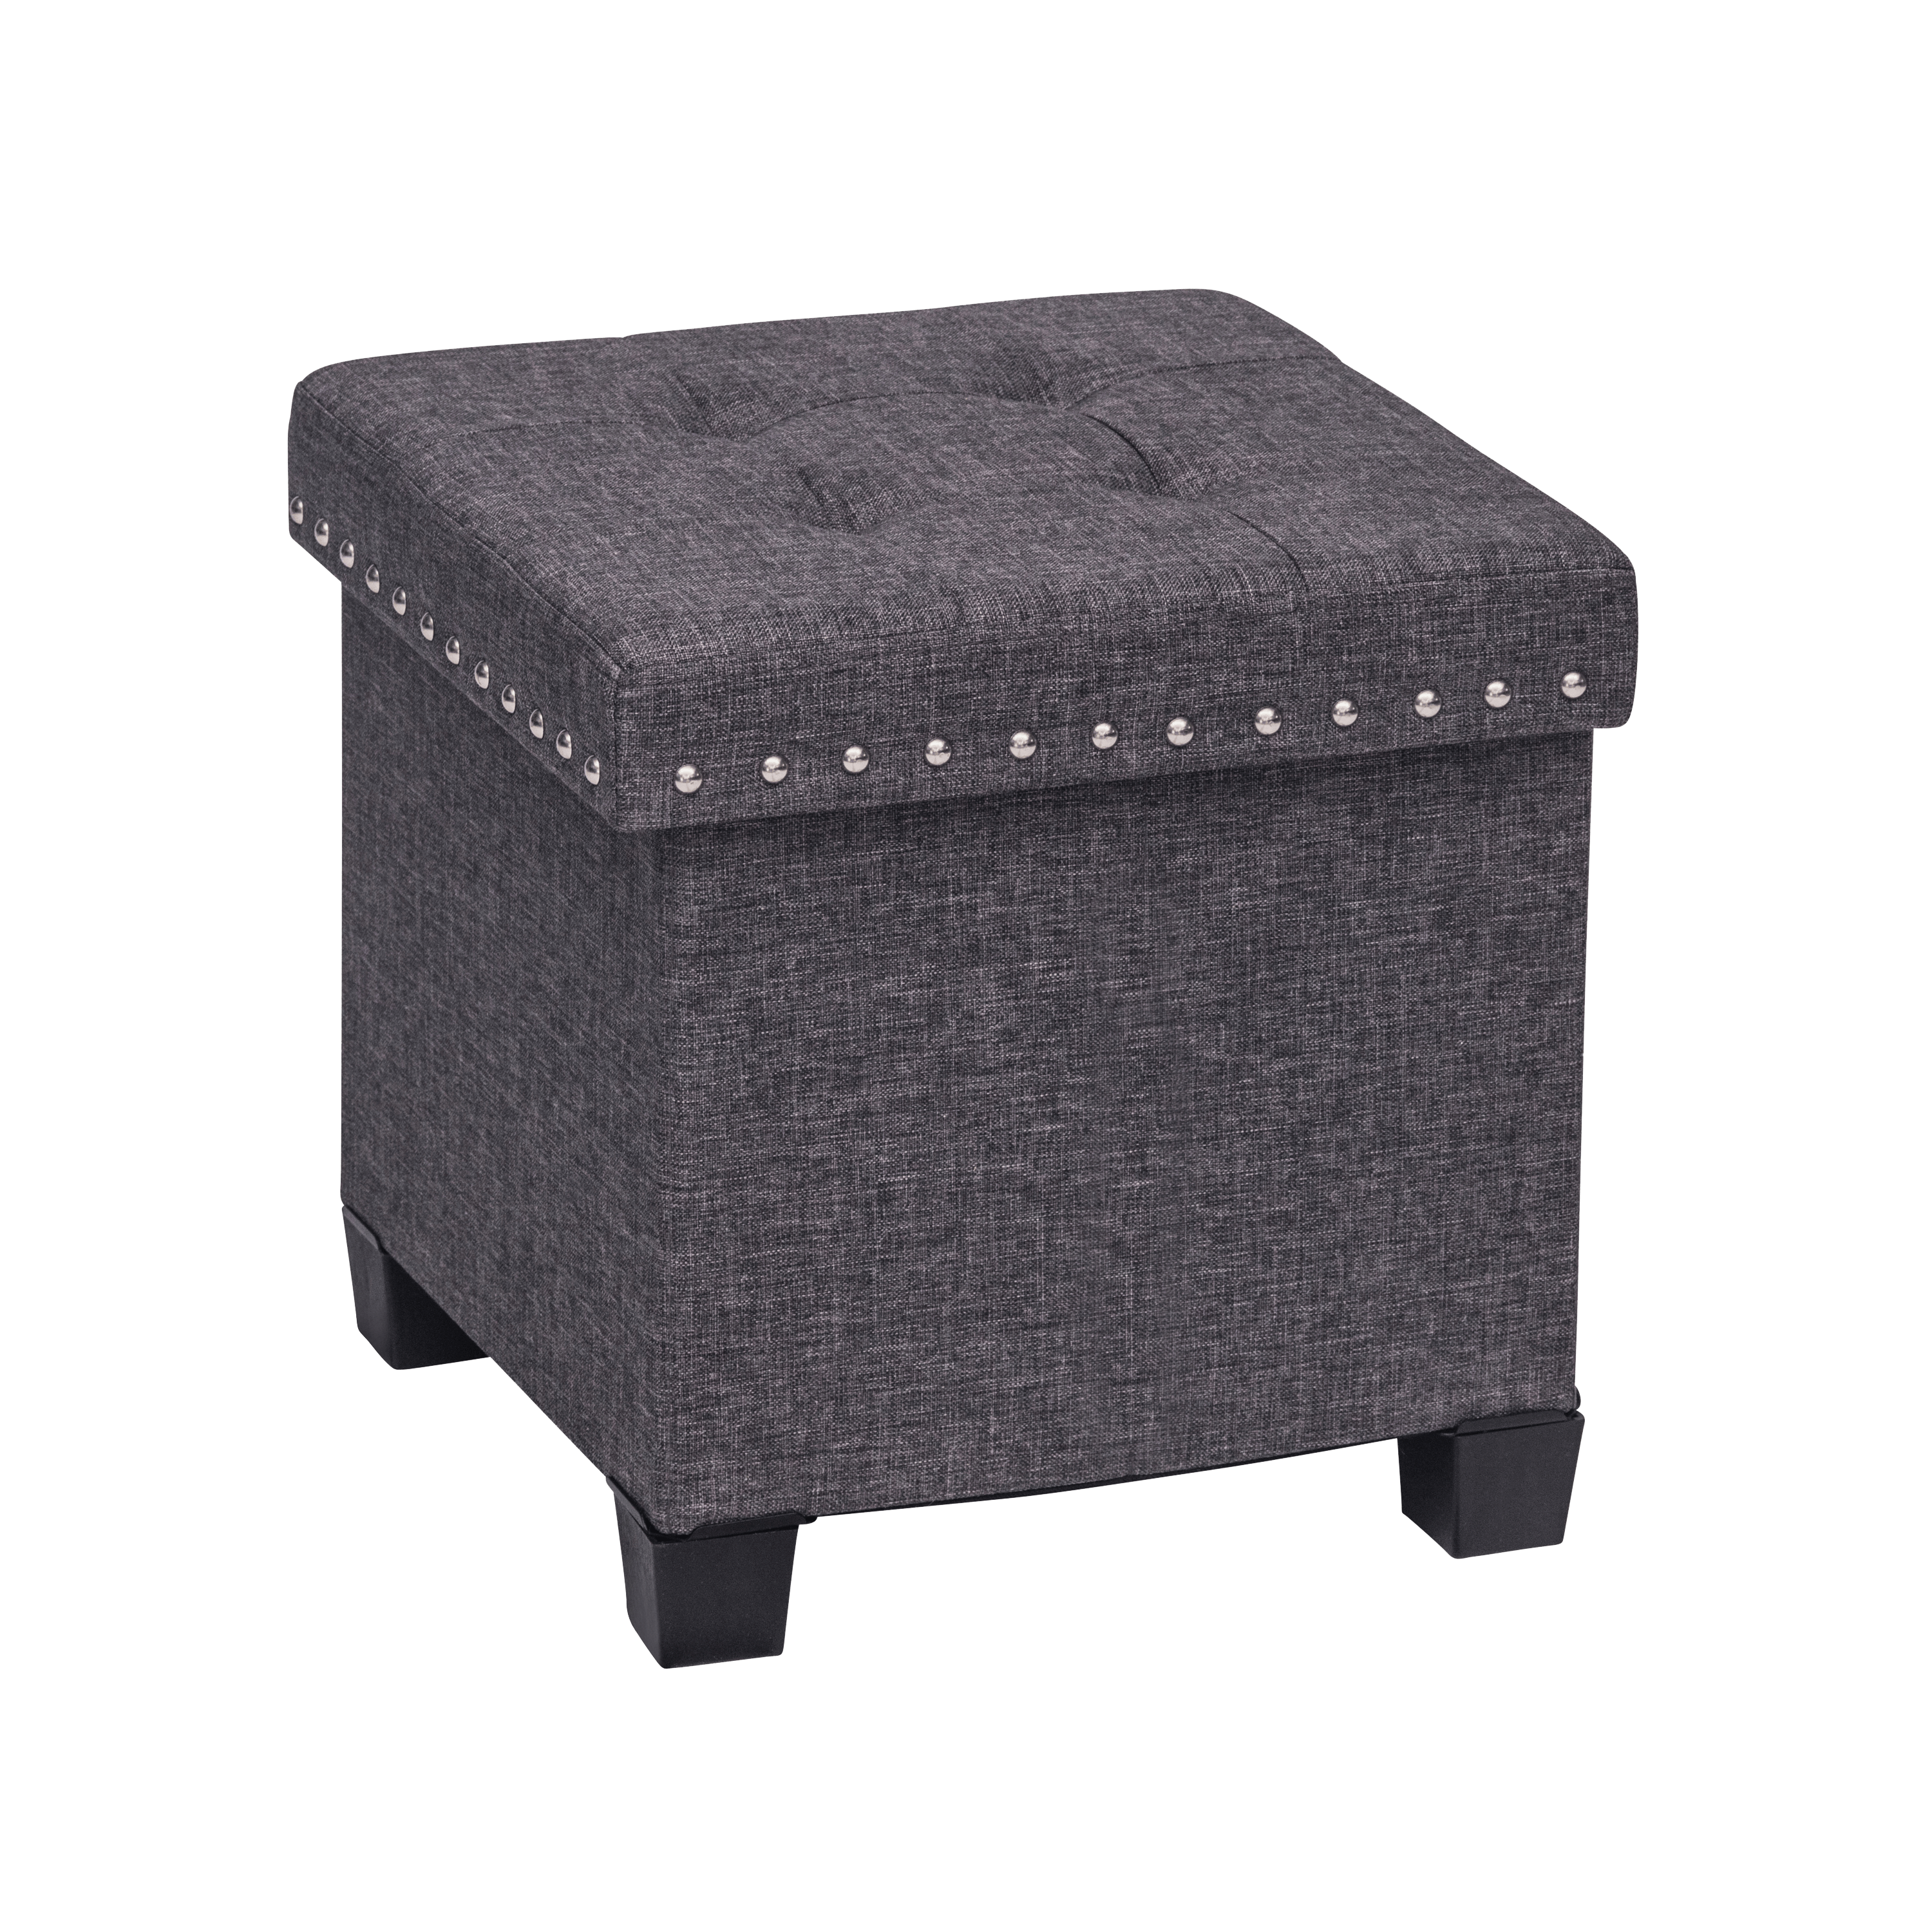 Payton Foldable Storage Ottoman Foot Rest and Seat with Feet, Cube Charcoal Gray Upholstered Fabric, Reclaimed Maple Wood Tray